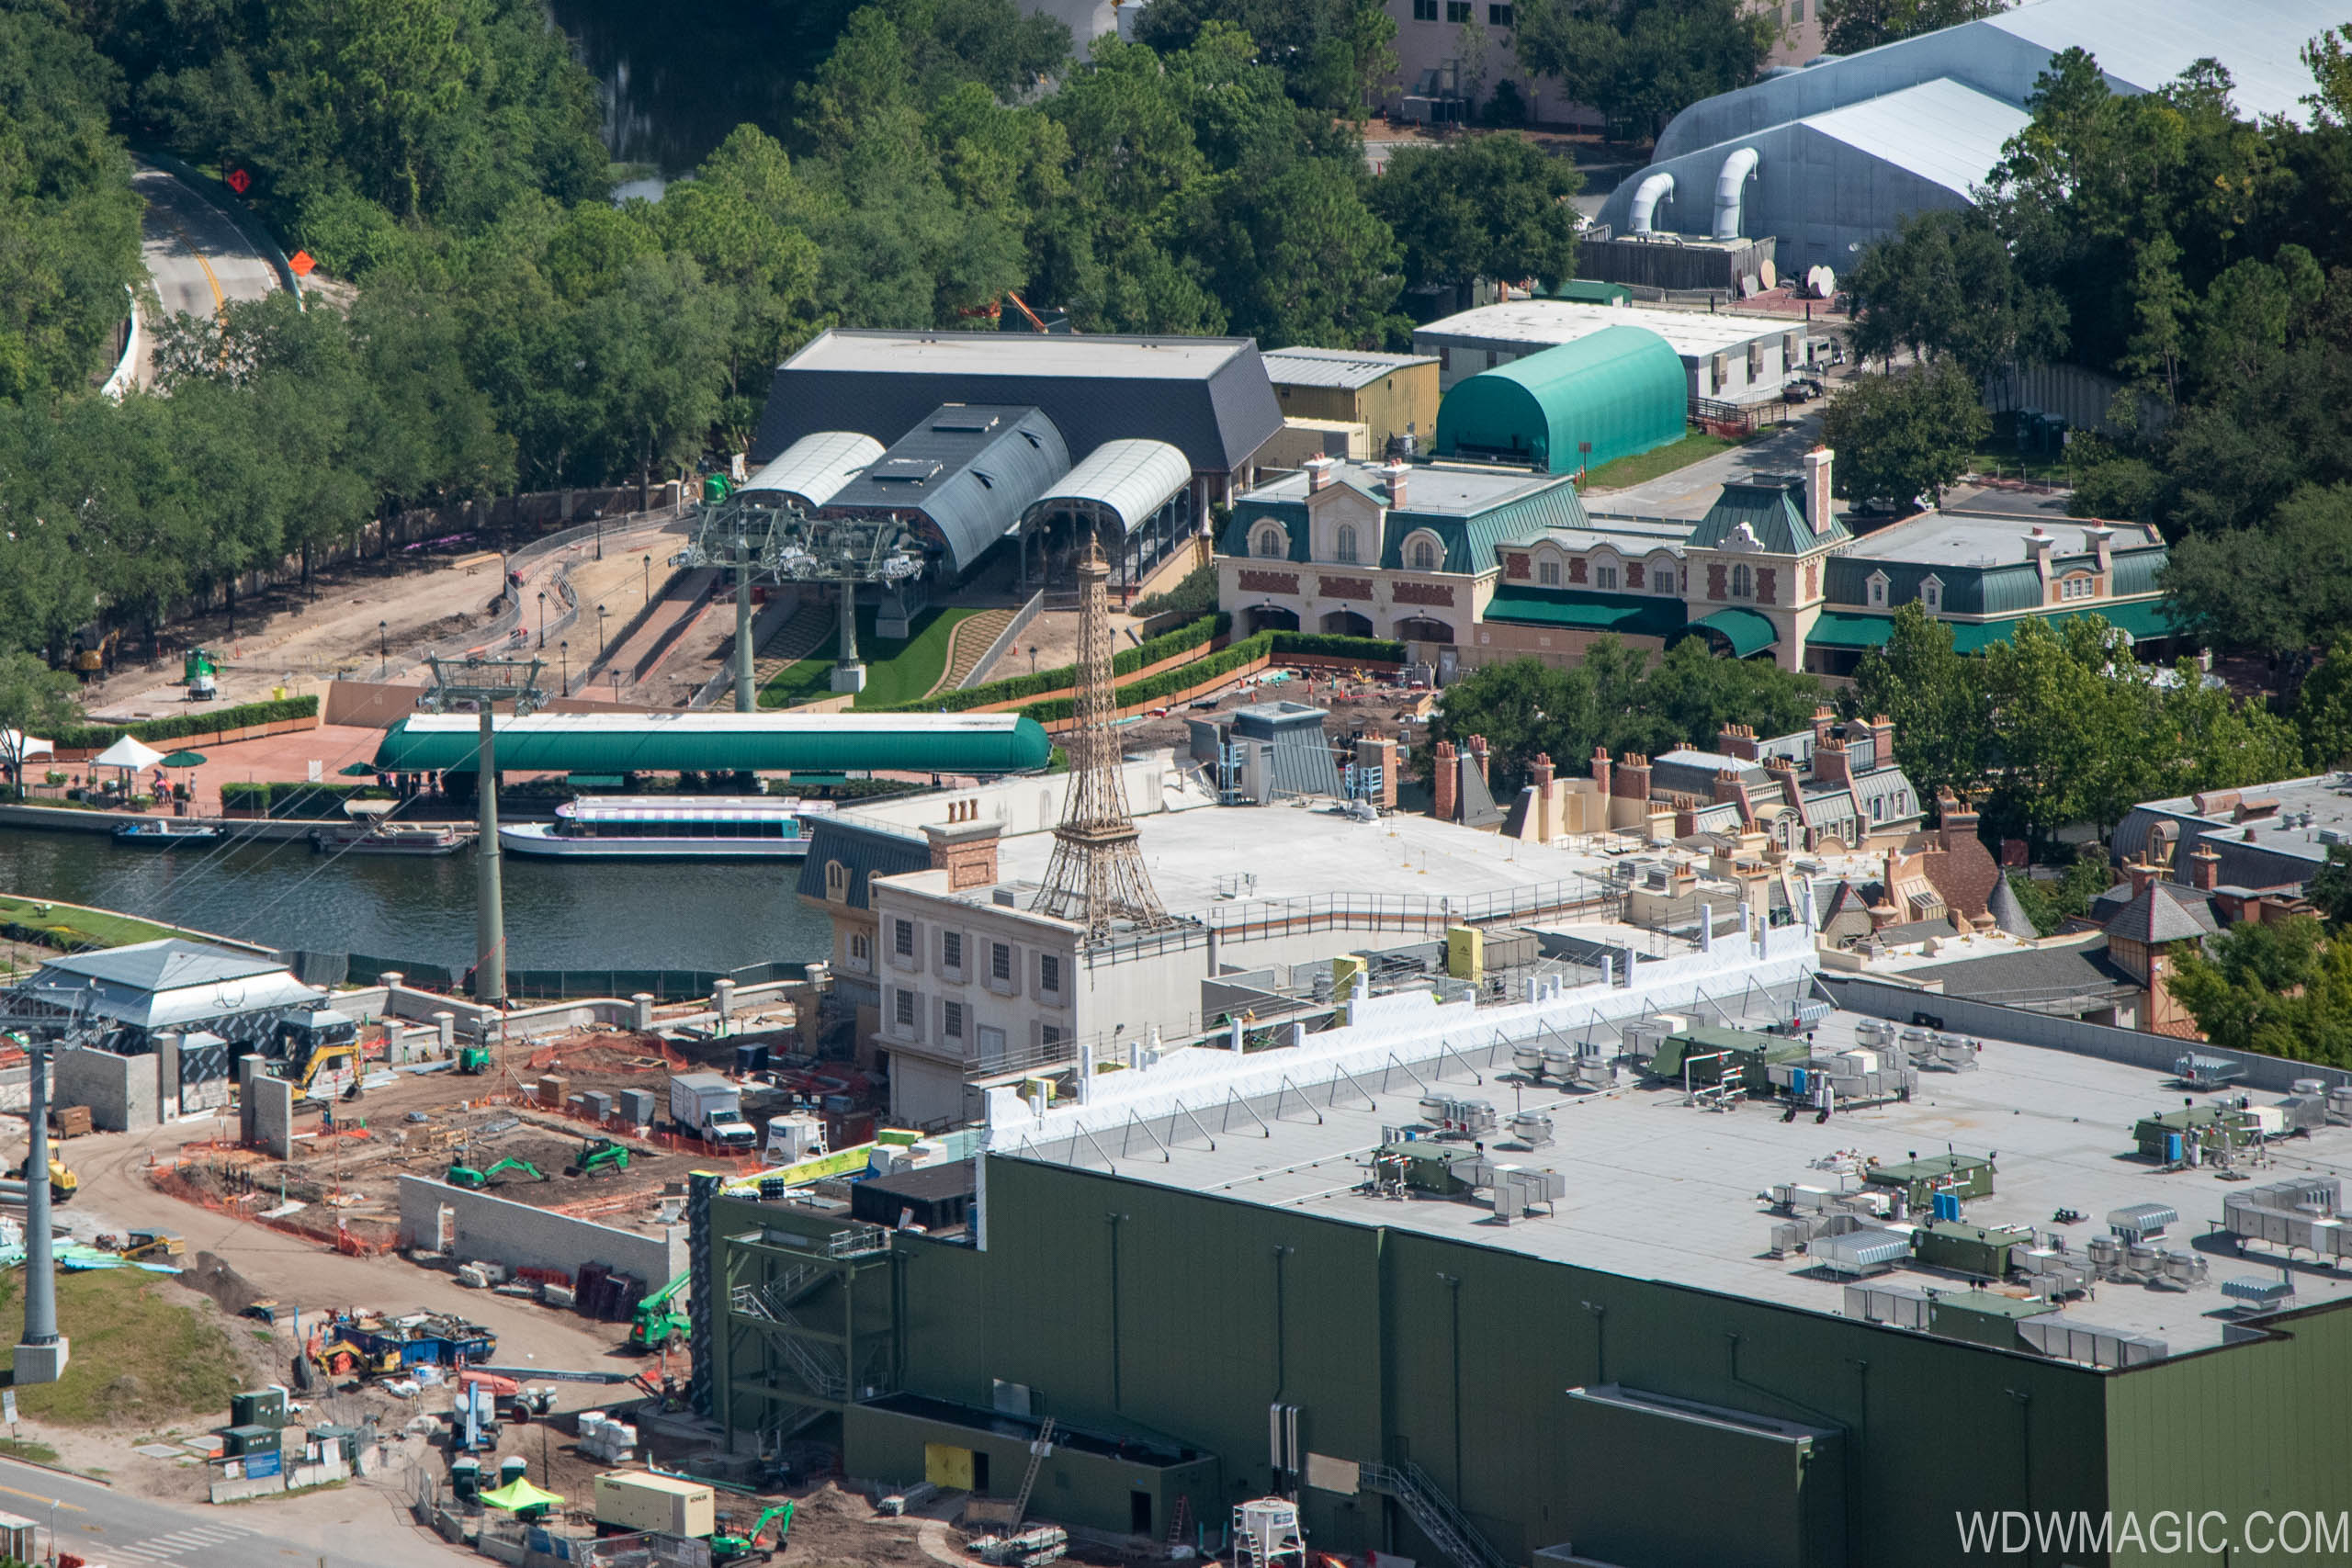 Remy's Ratatouille Adventure construction - July 2019